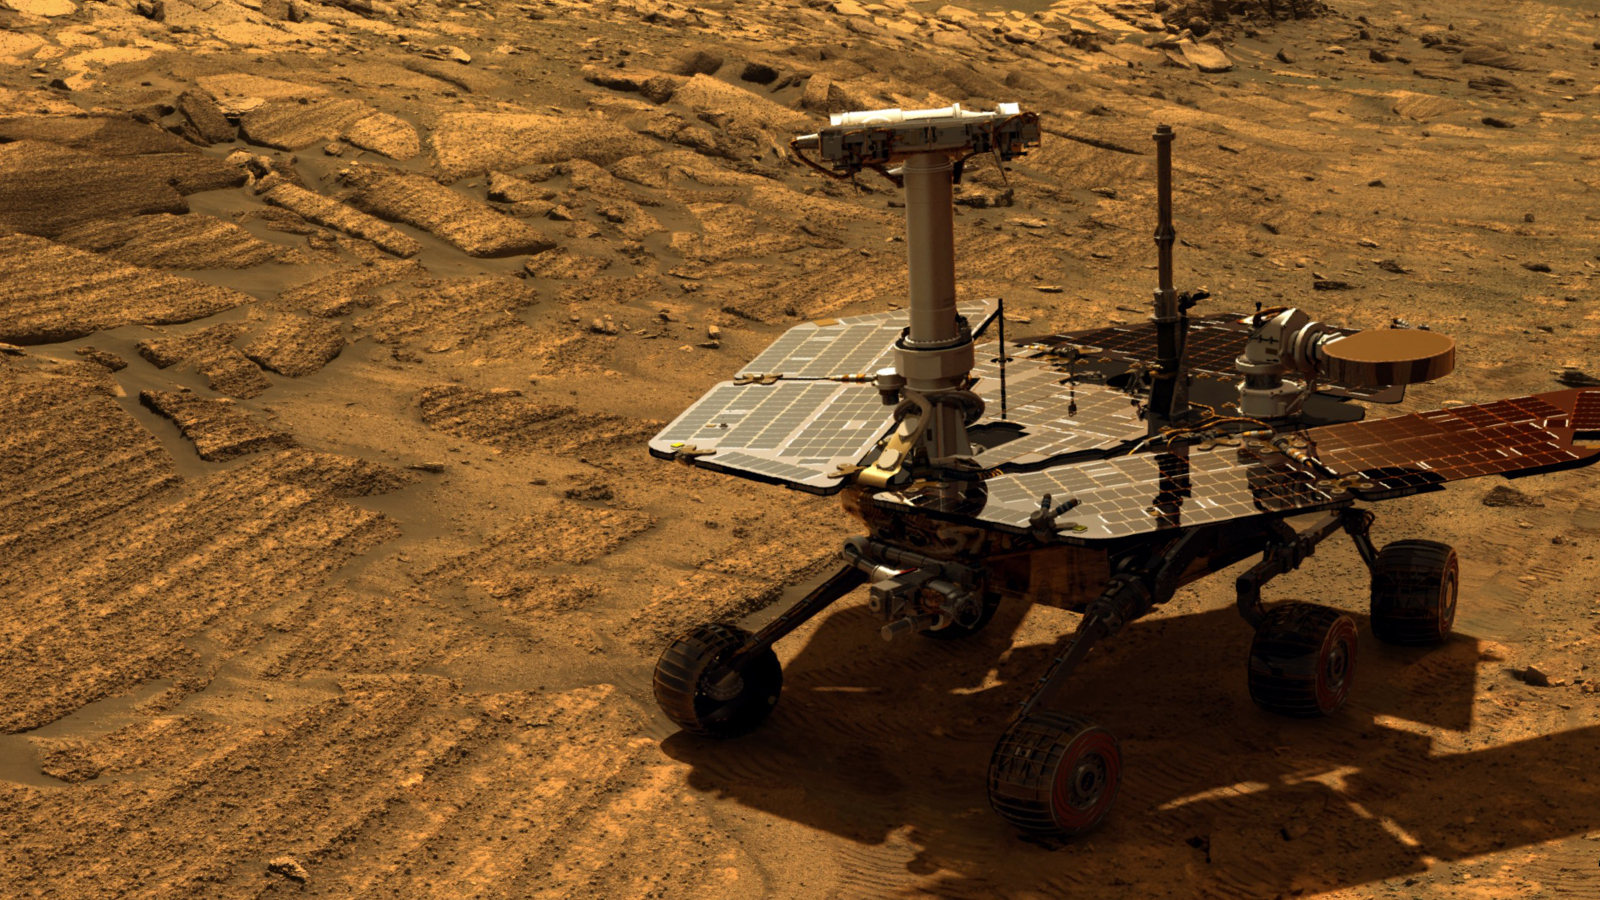 new mars exploration rover - photo #19